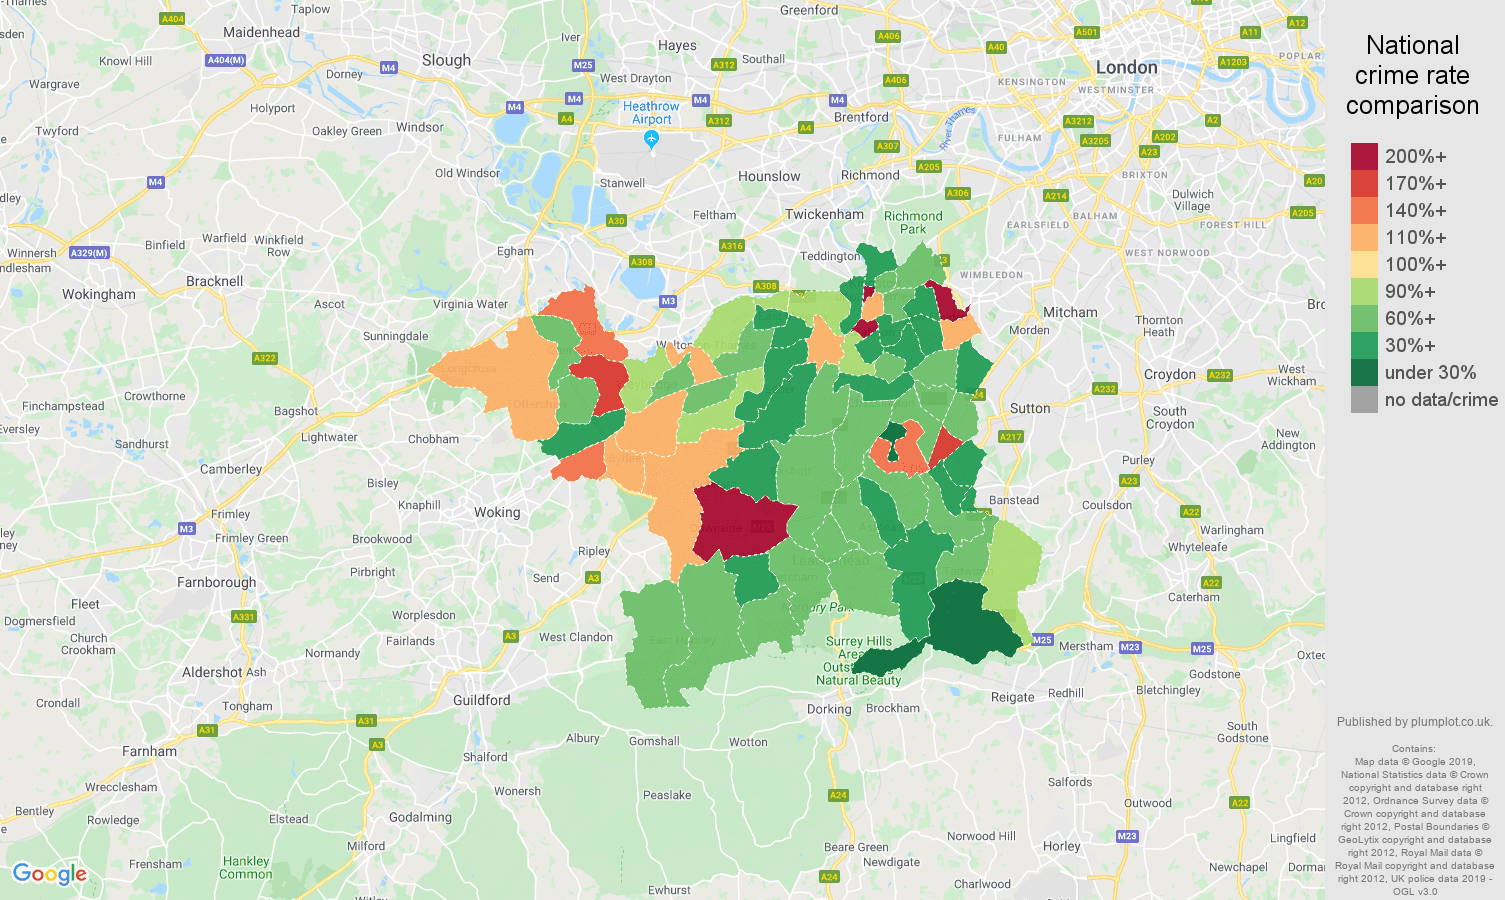 Kingston upon Thames other theft crime rate comparison map